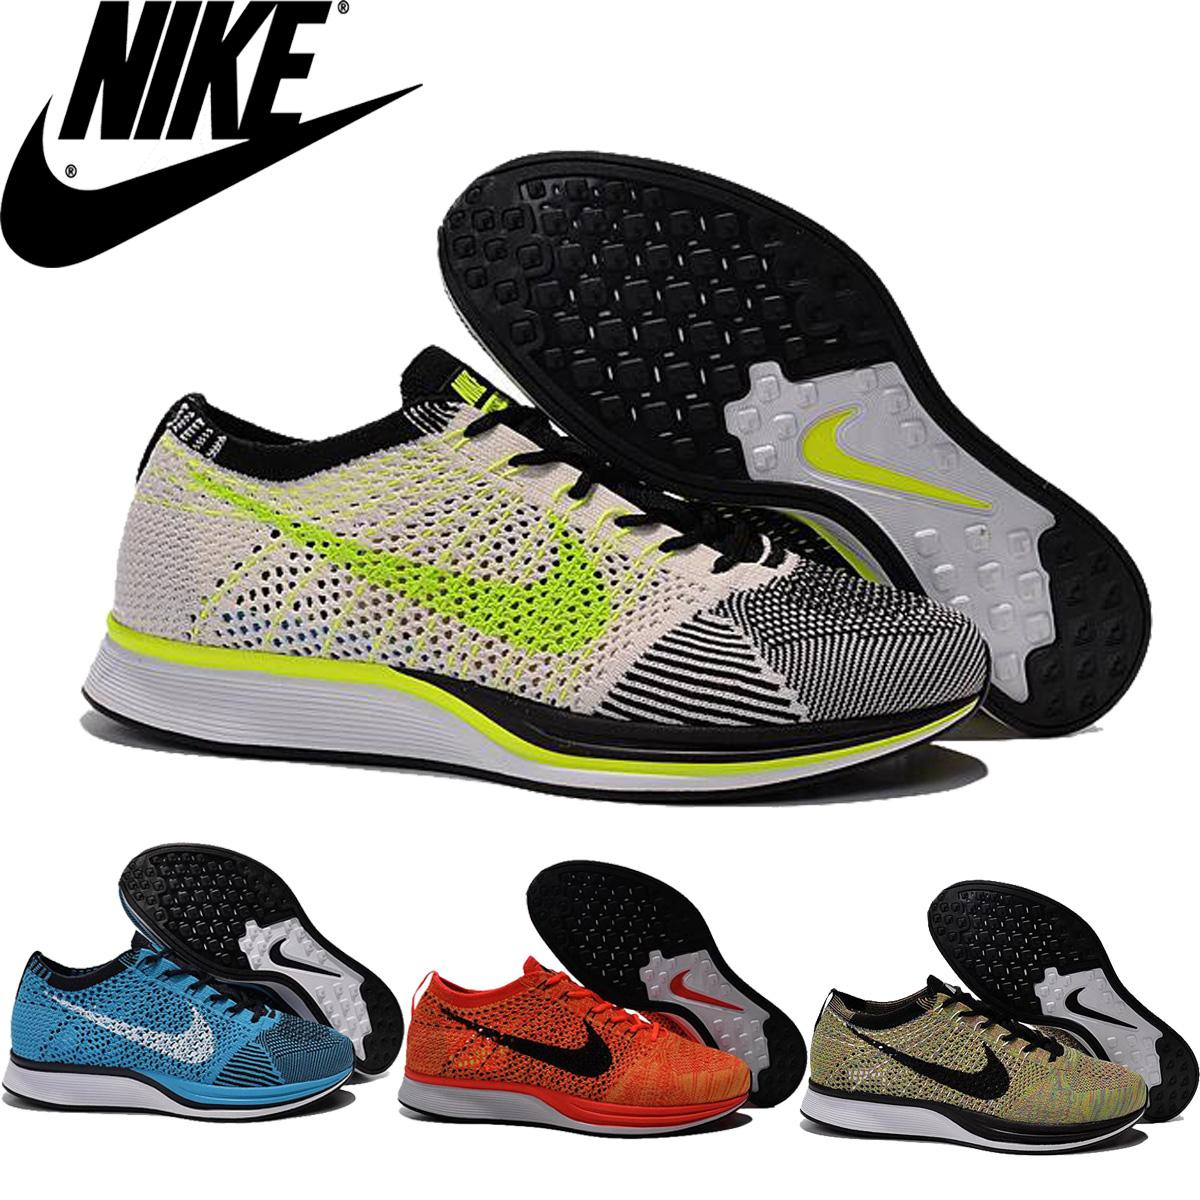 pretty nice d6690 e1c47 real nike flyknit racer dhgate 693a5 a6d85